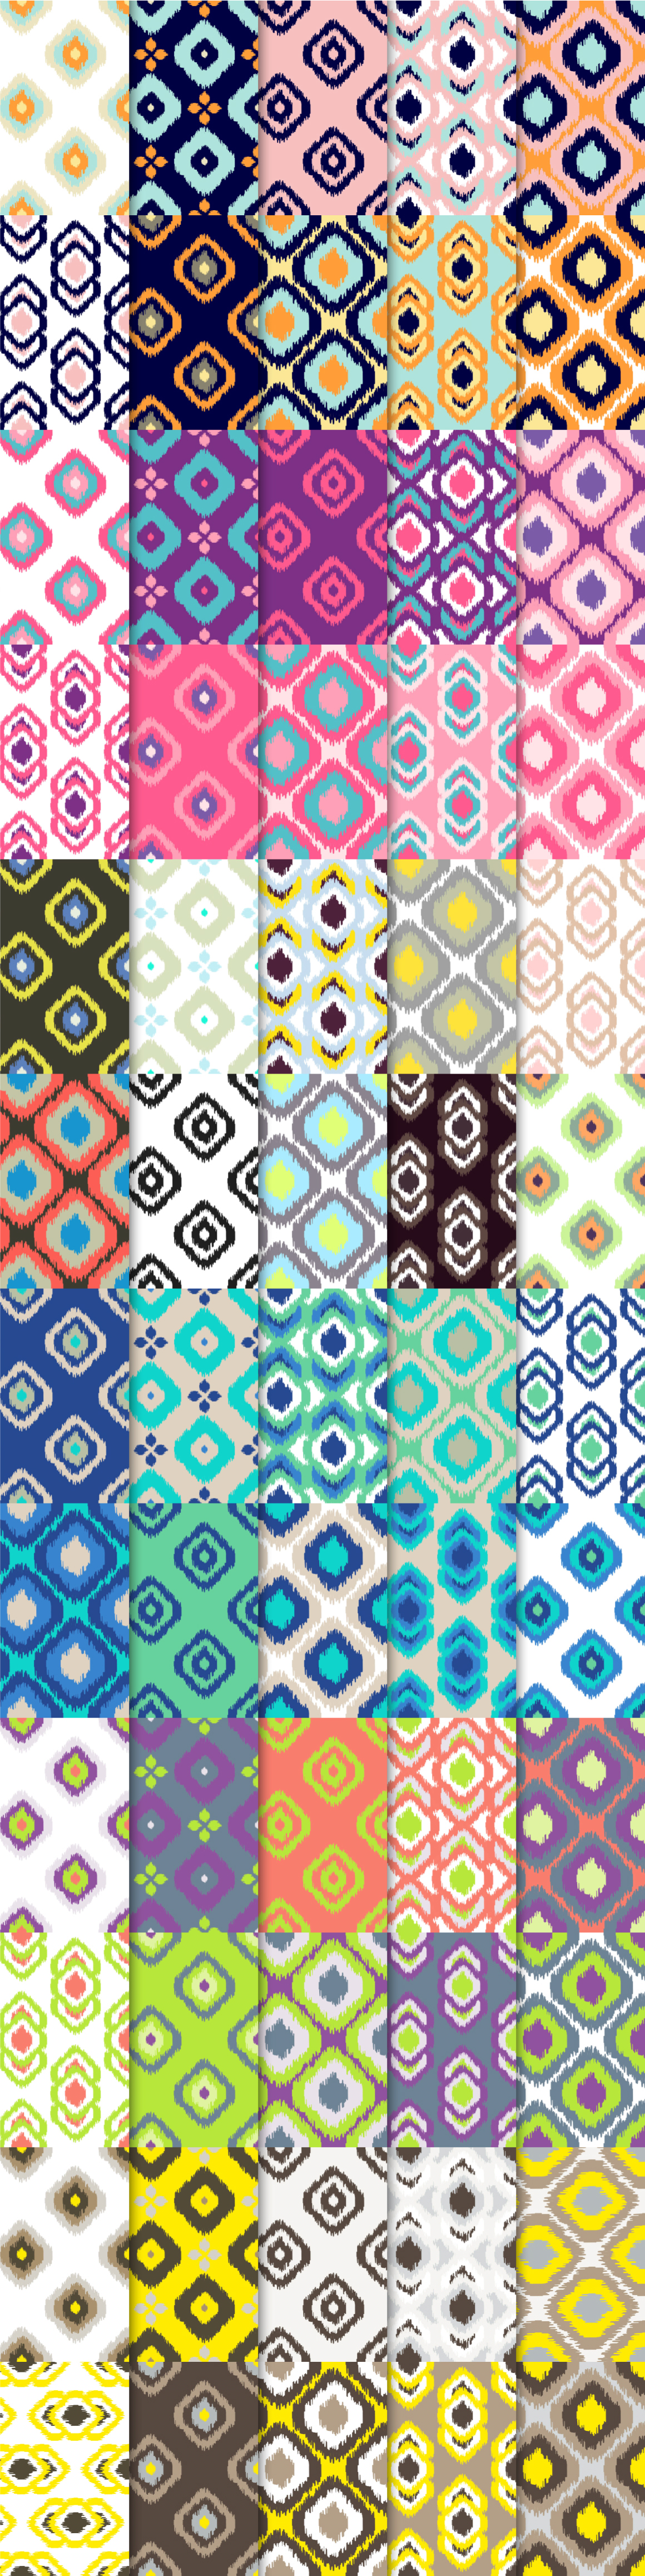 60 Ikat Seamless Vector Patterns example image 2